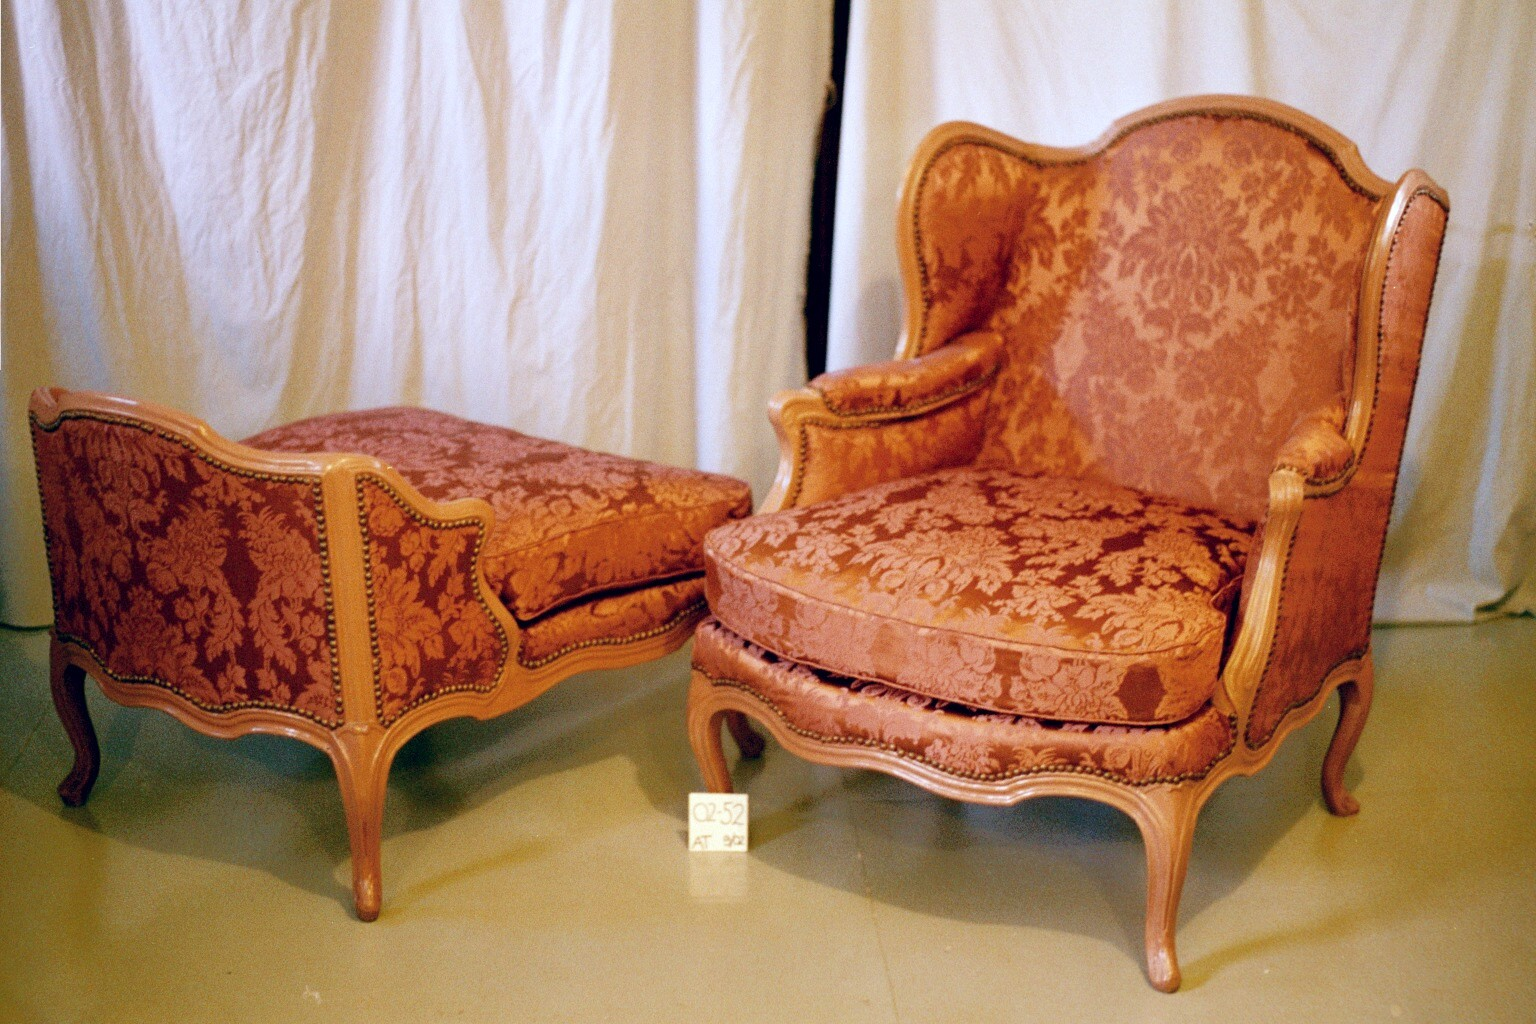 After Textile Conservation - A Louis XV Bergere a la Reine after textile conservation, textile conservator, antique historic textile preservation repair chair from a museum collection after conservation treatment and re-upholstery by textile conservator, Gwen Spicer of Spicer Art Conservation expert in textile repair preservation and conservation.